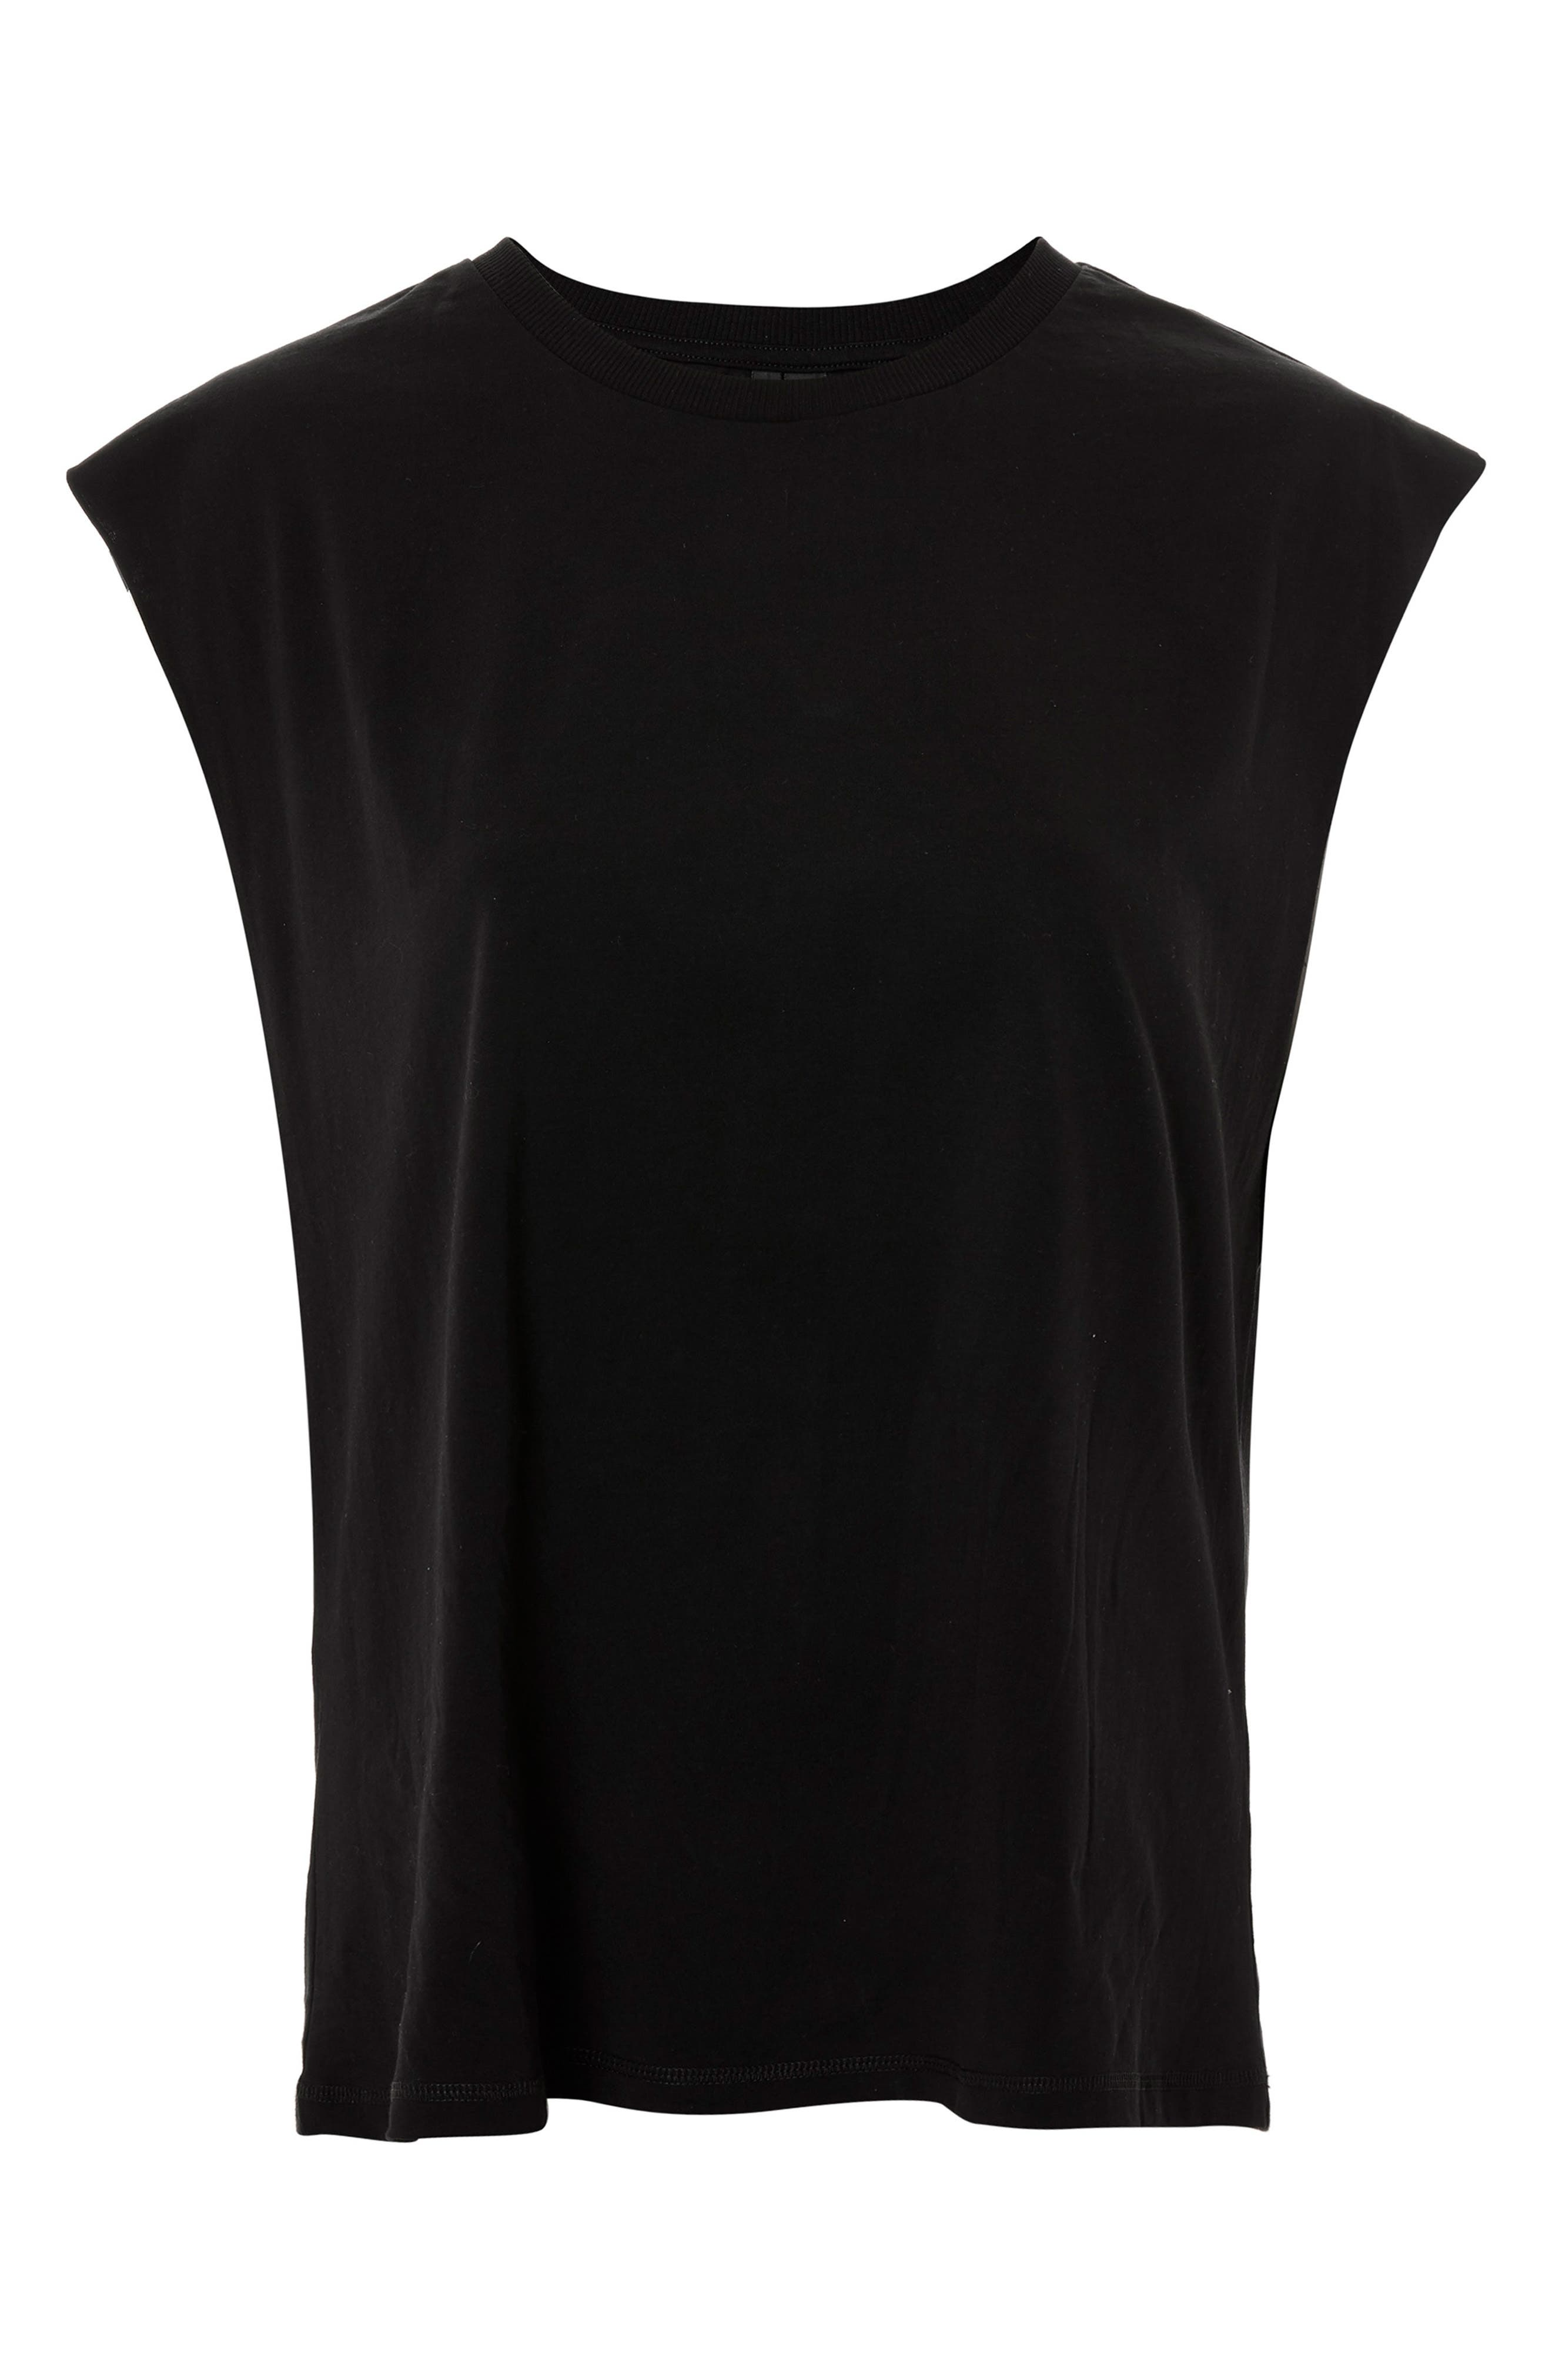 Raw Sleeve Top,                         Main,                         color, Black